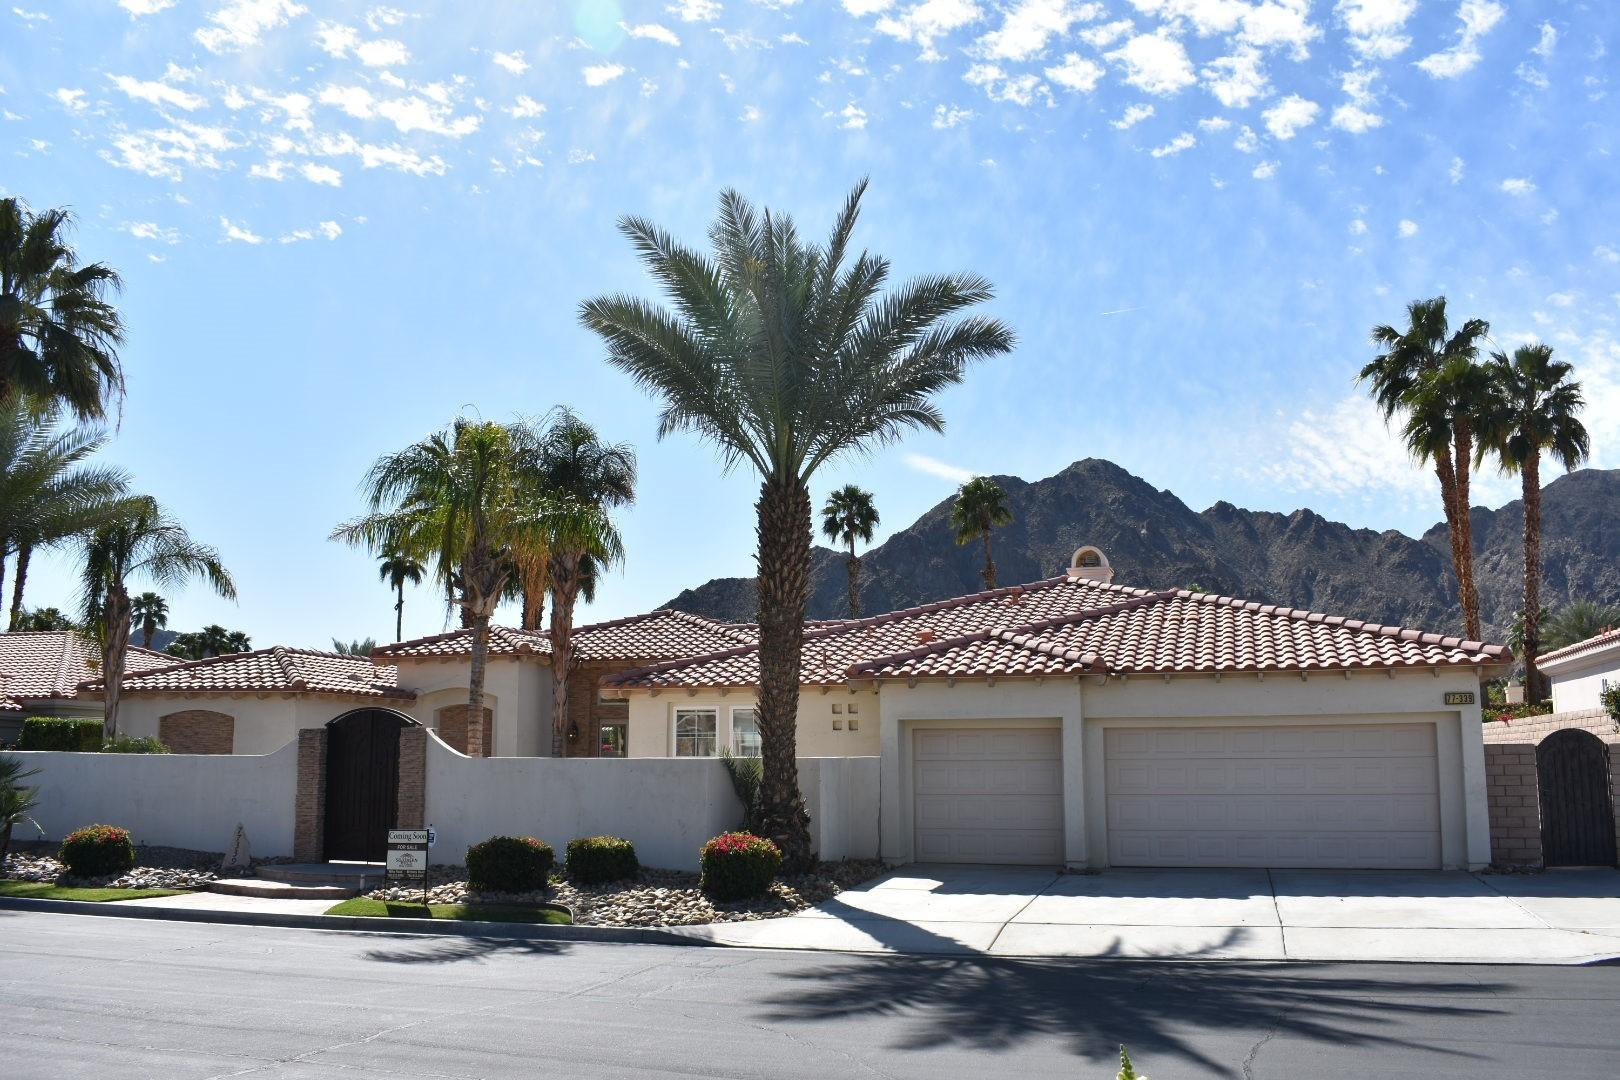 If you're looking for a home with unobstructed magestic mountain views, look no further. This gem is located on a very quiet street within the Indian Wells Country Club gates with low monthly HOA's. This highly sought after 4 bedroom, 4 1/2 bath, 2,840 square foot home is perfect to upgrade with your personal finishes. The backyard is perfect for entertaining guests with a BBQ island, outdoor fireplace and putting green with the mountains as your backdrop.